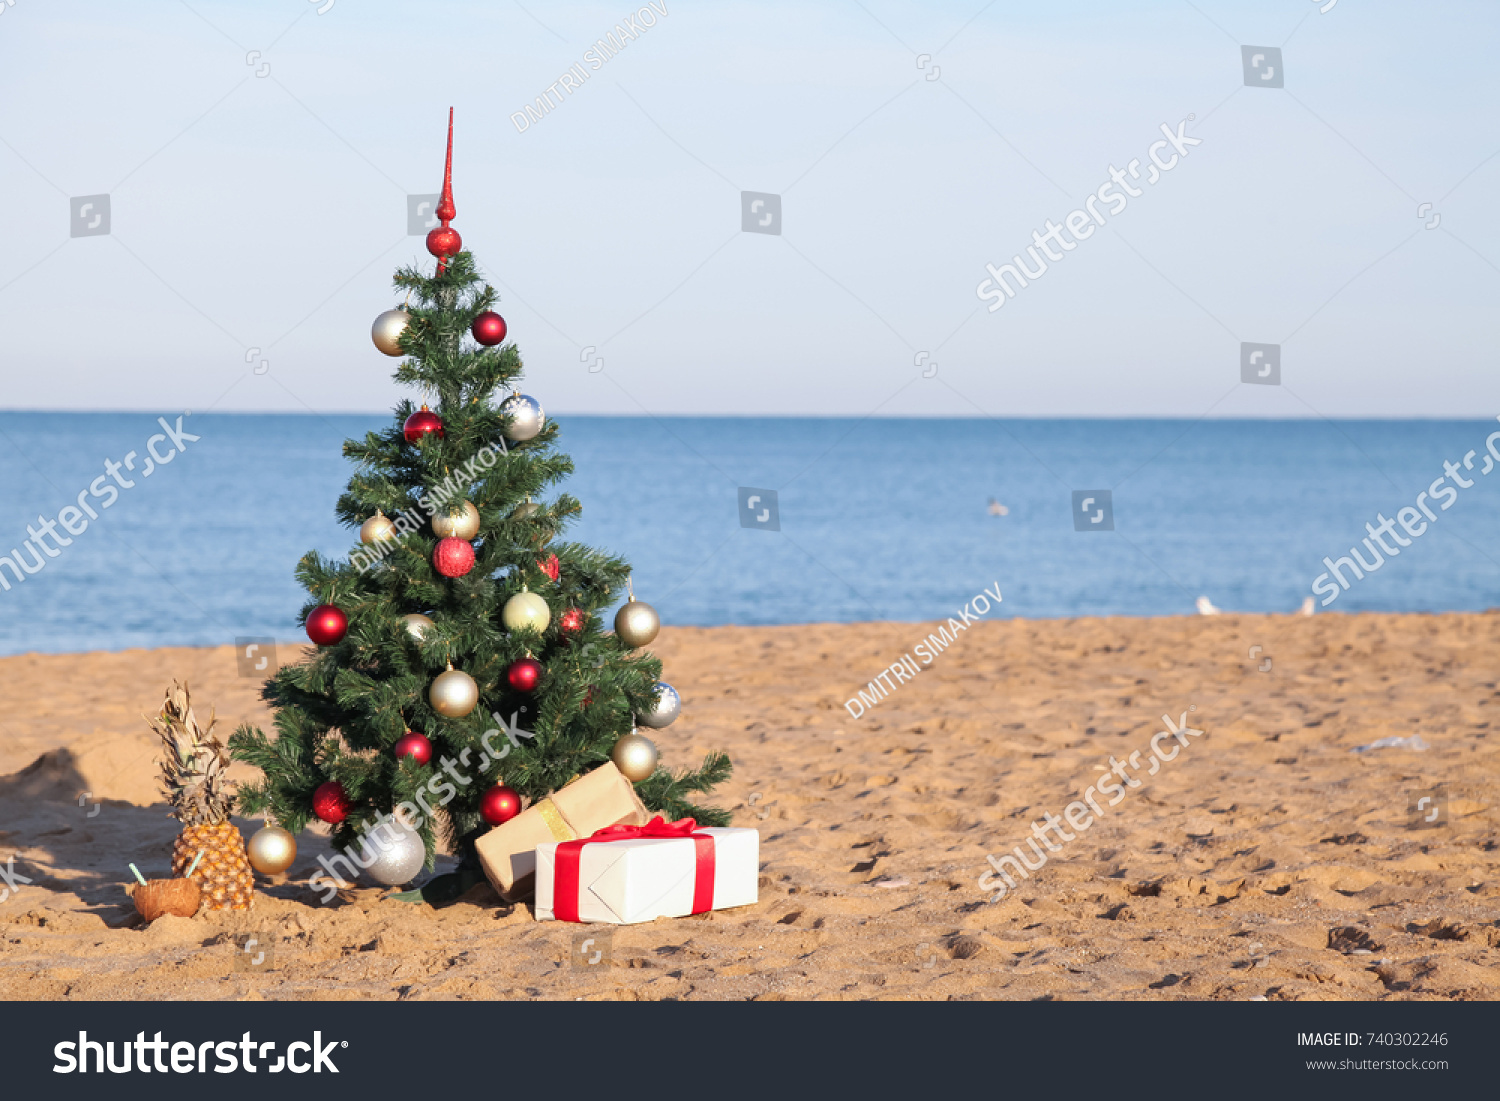 christmas on the beach with gifts new year - Christmas On The Beach